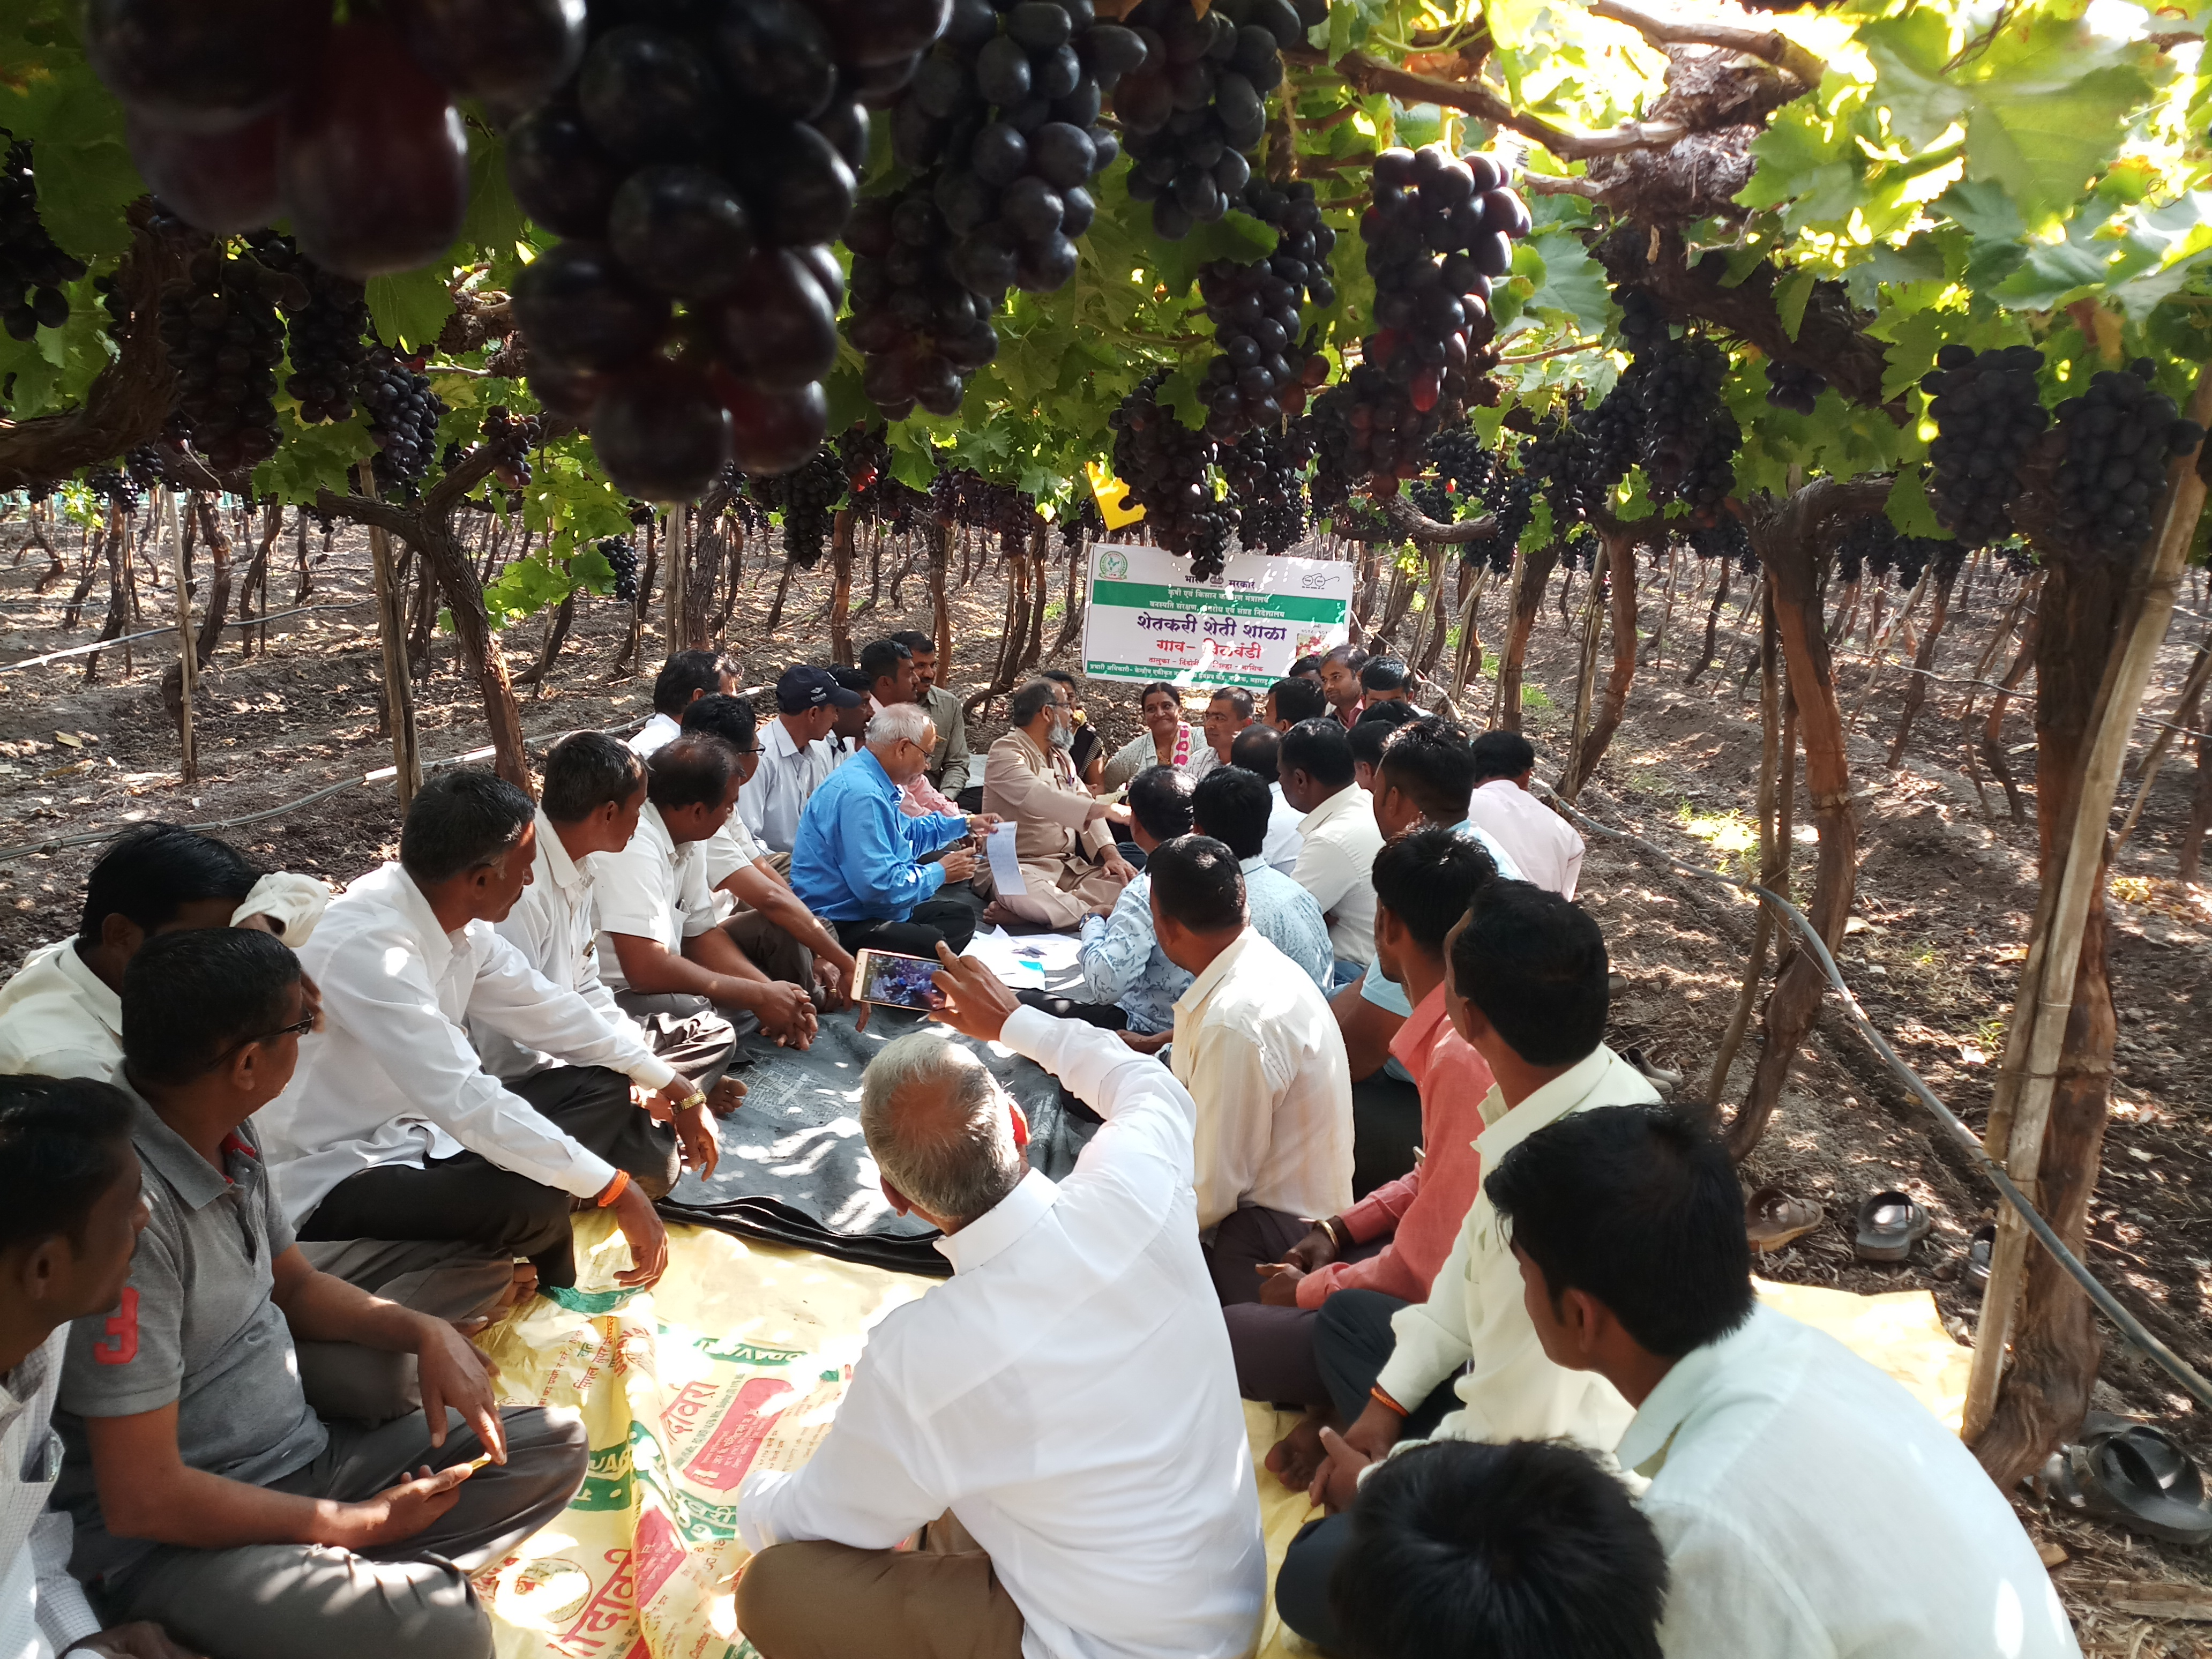 Dr. M. Aziz, IAS, MD of NHB visited FFS plot on Grapes